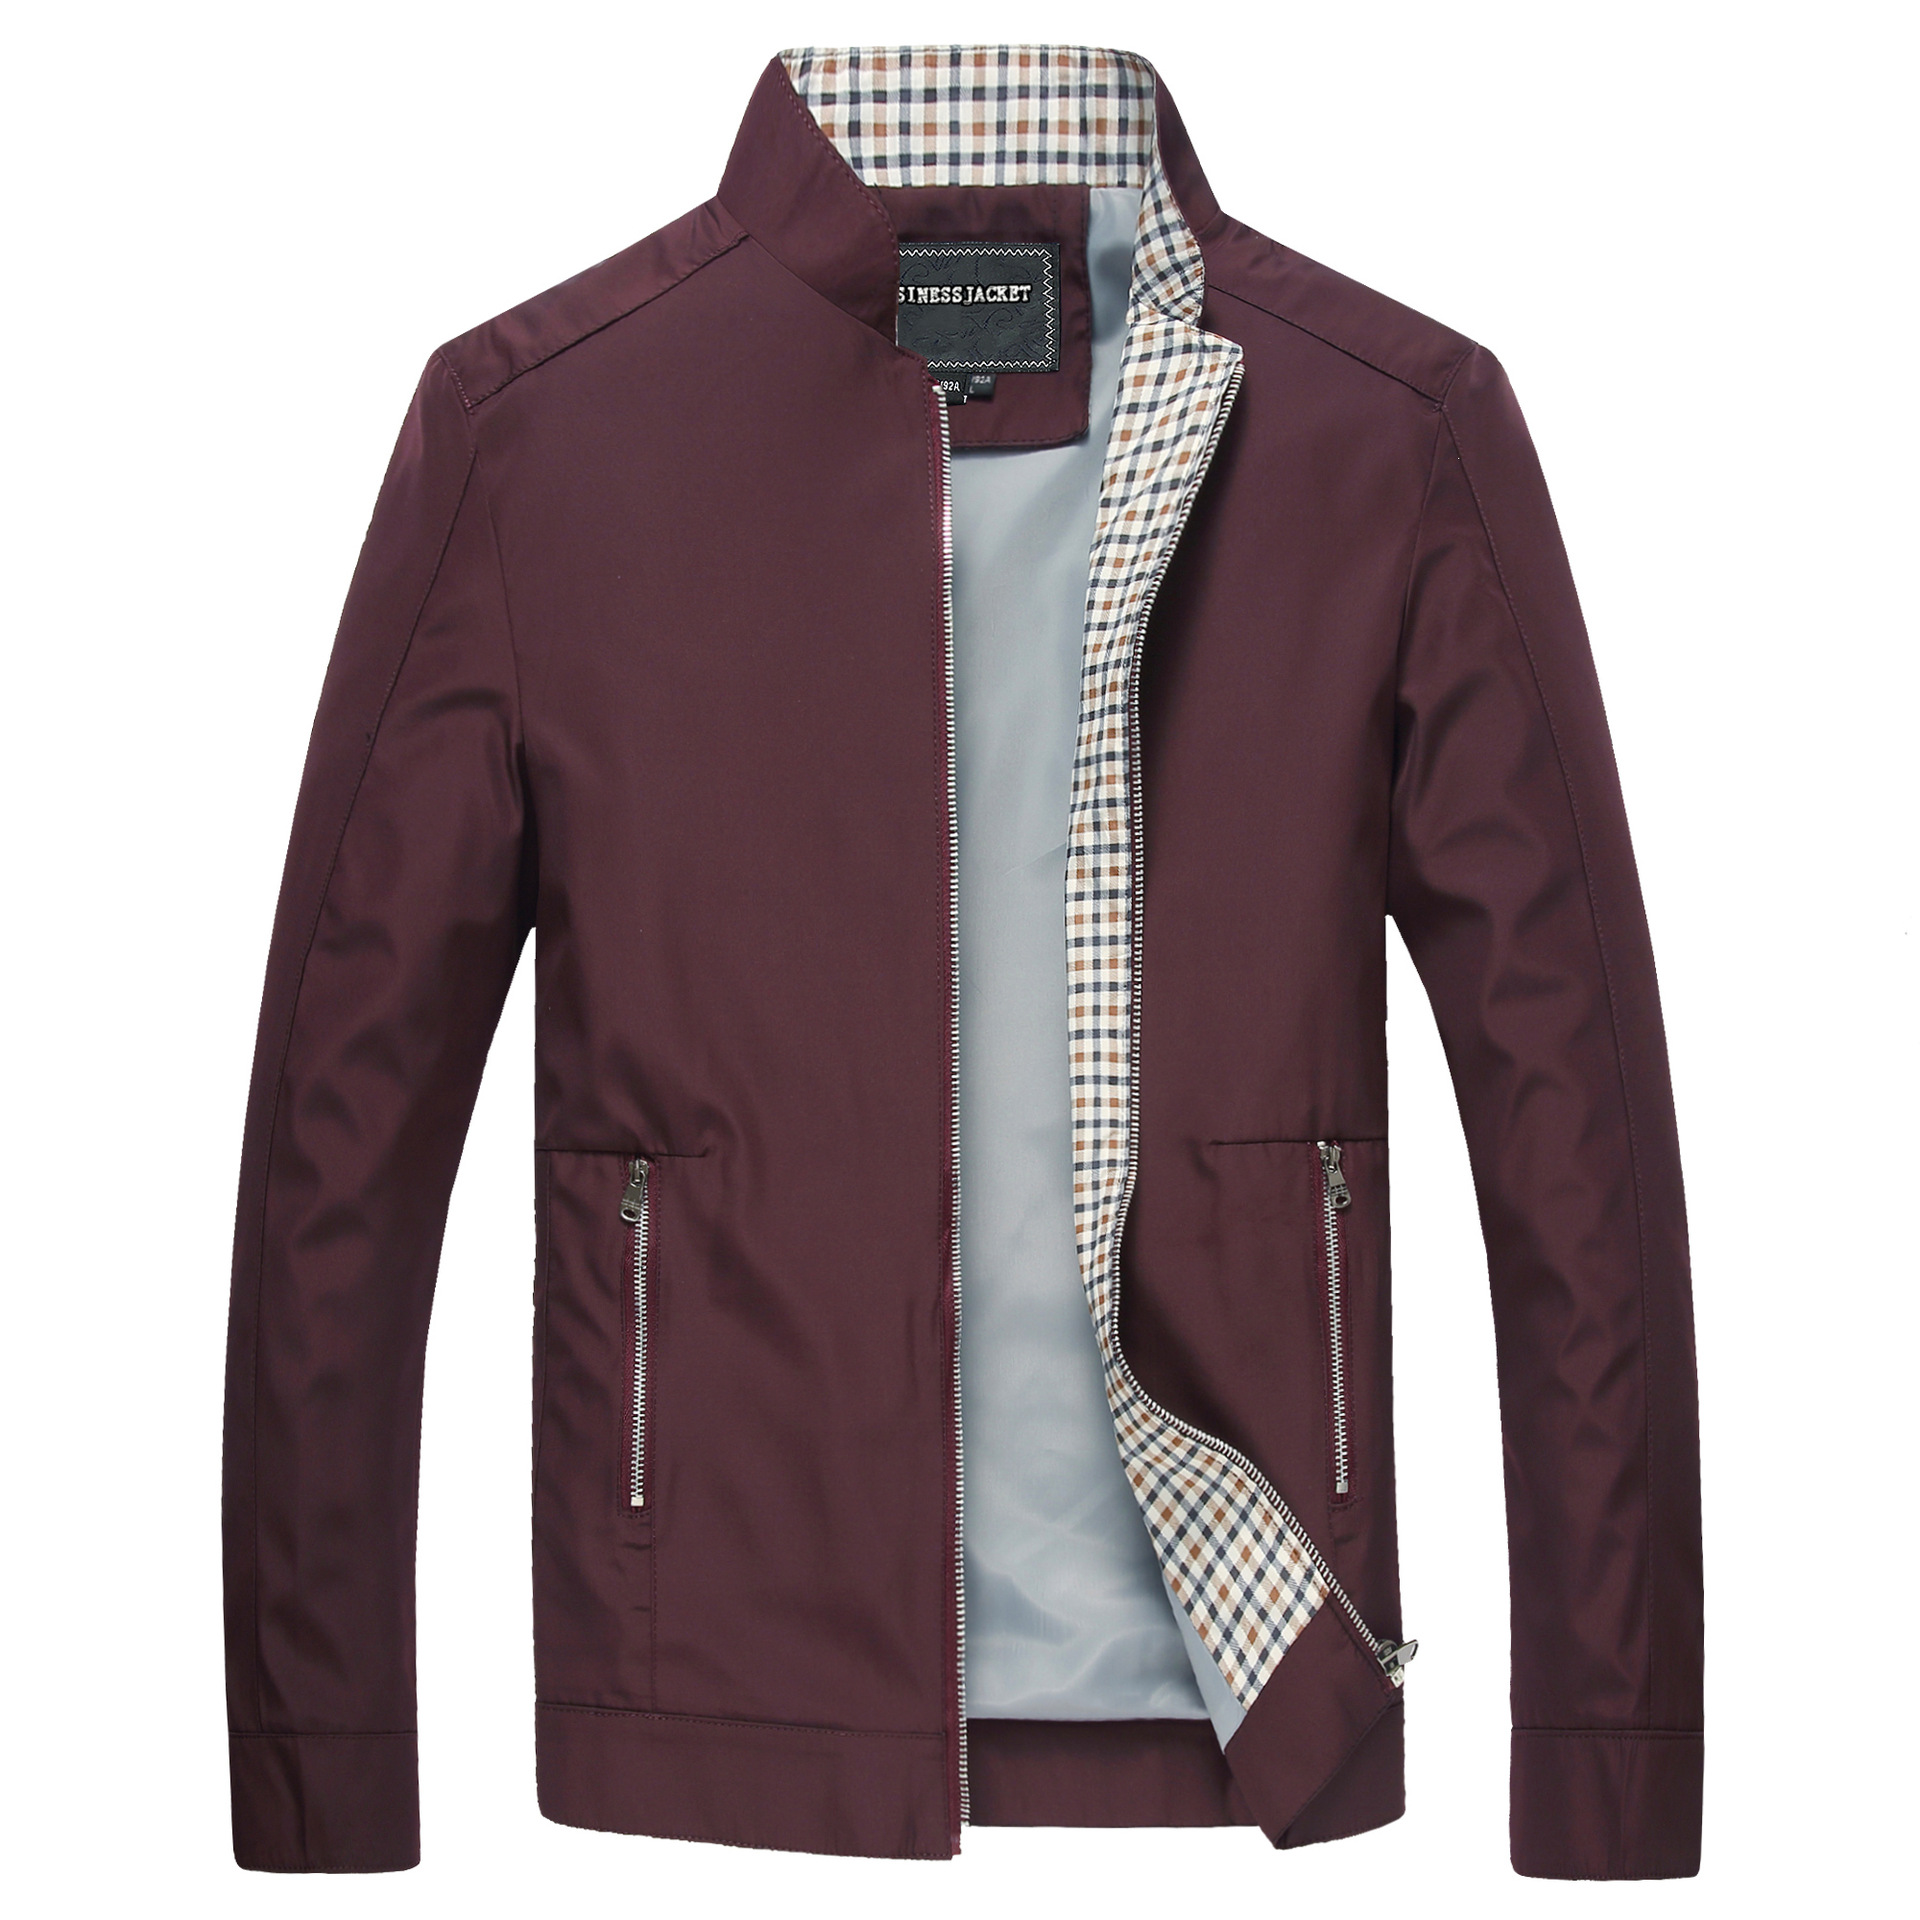 90-Day Archives Mens spring jackets fashion